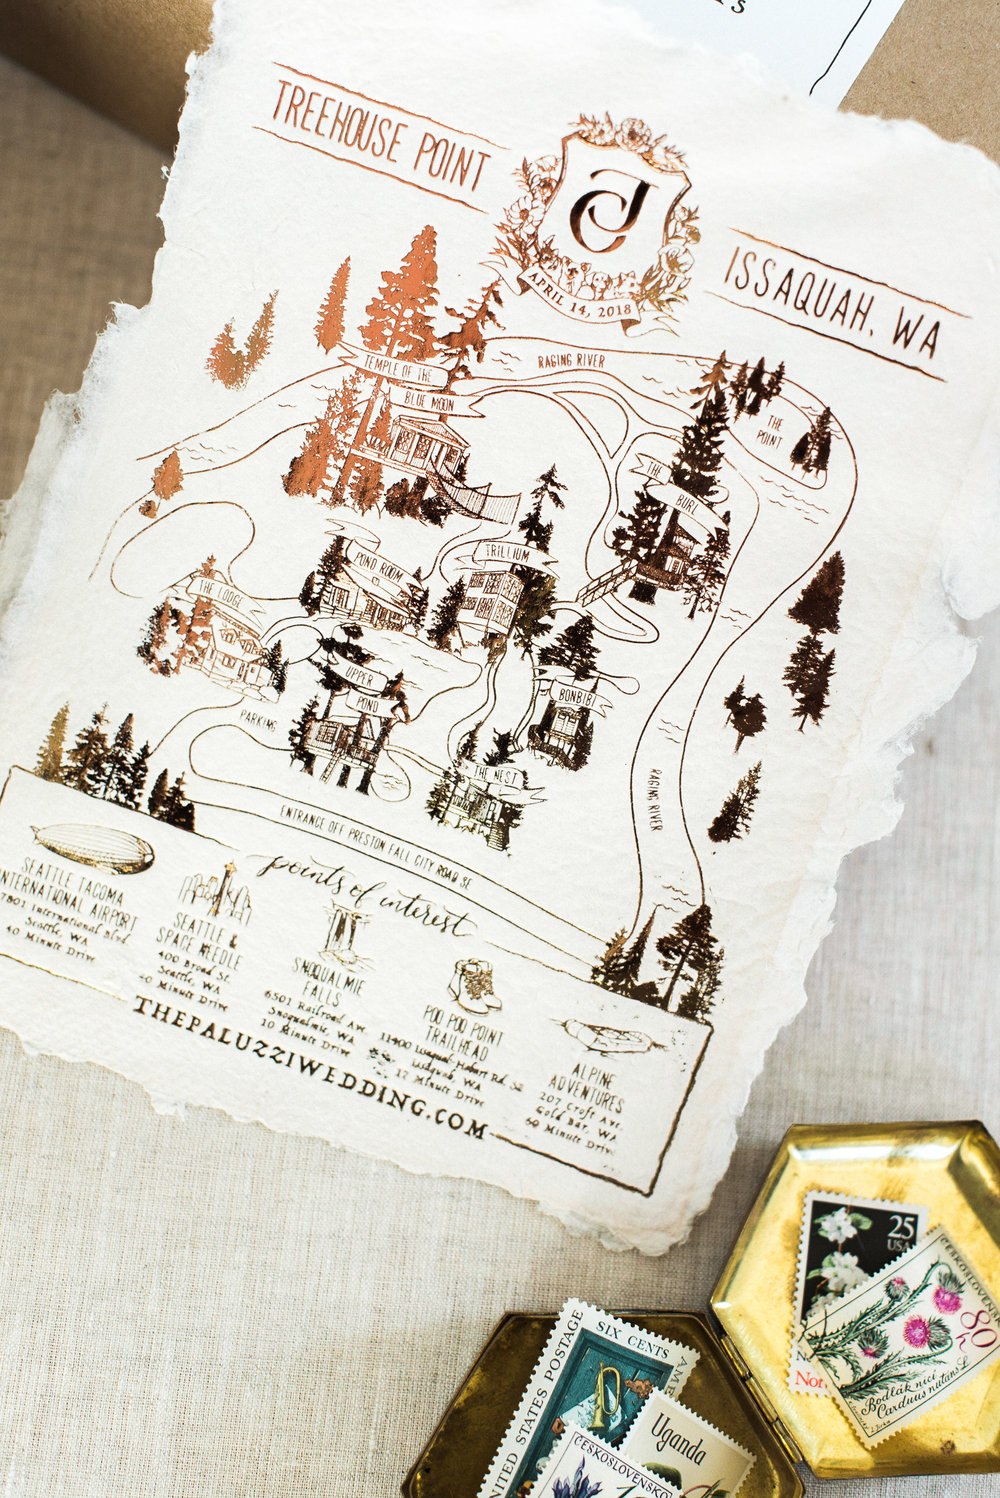 Issaquah, WA Treehouse Point Wedding Map